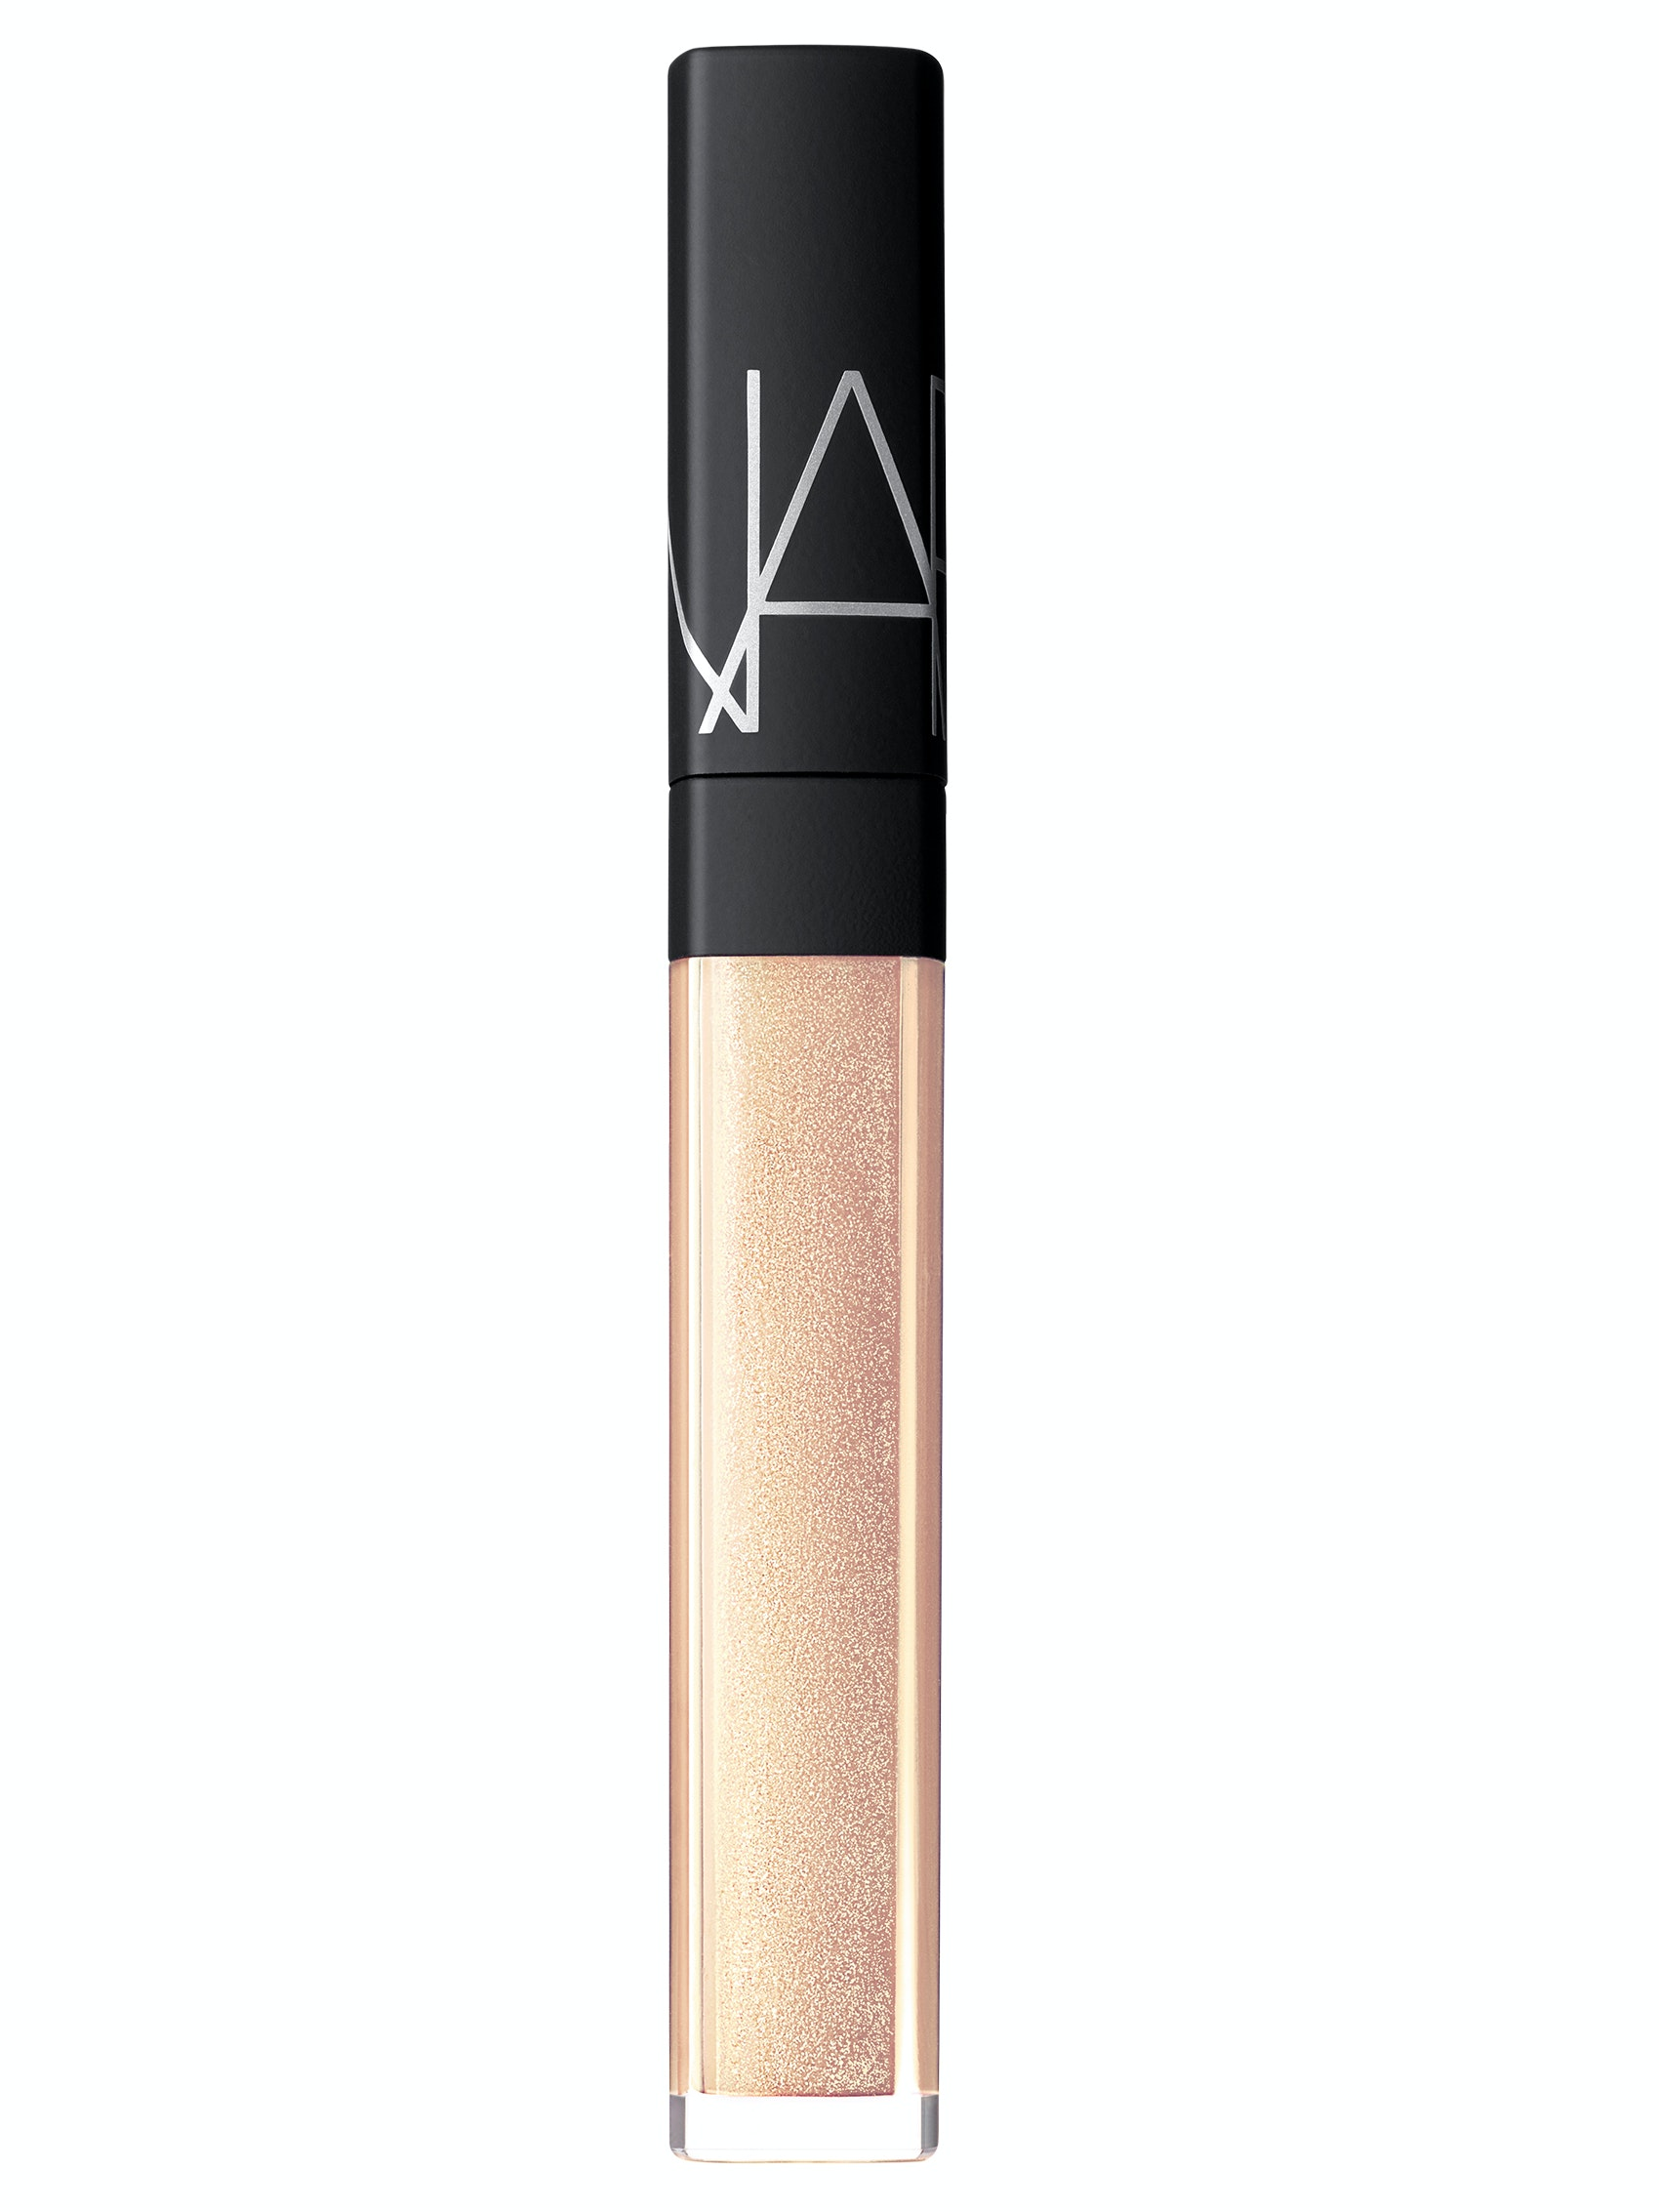 NARS Cosmetics Multi-Use Lip Gloss in Star Babe